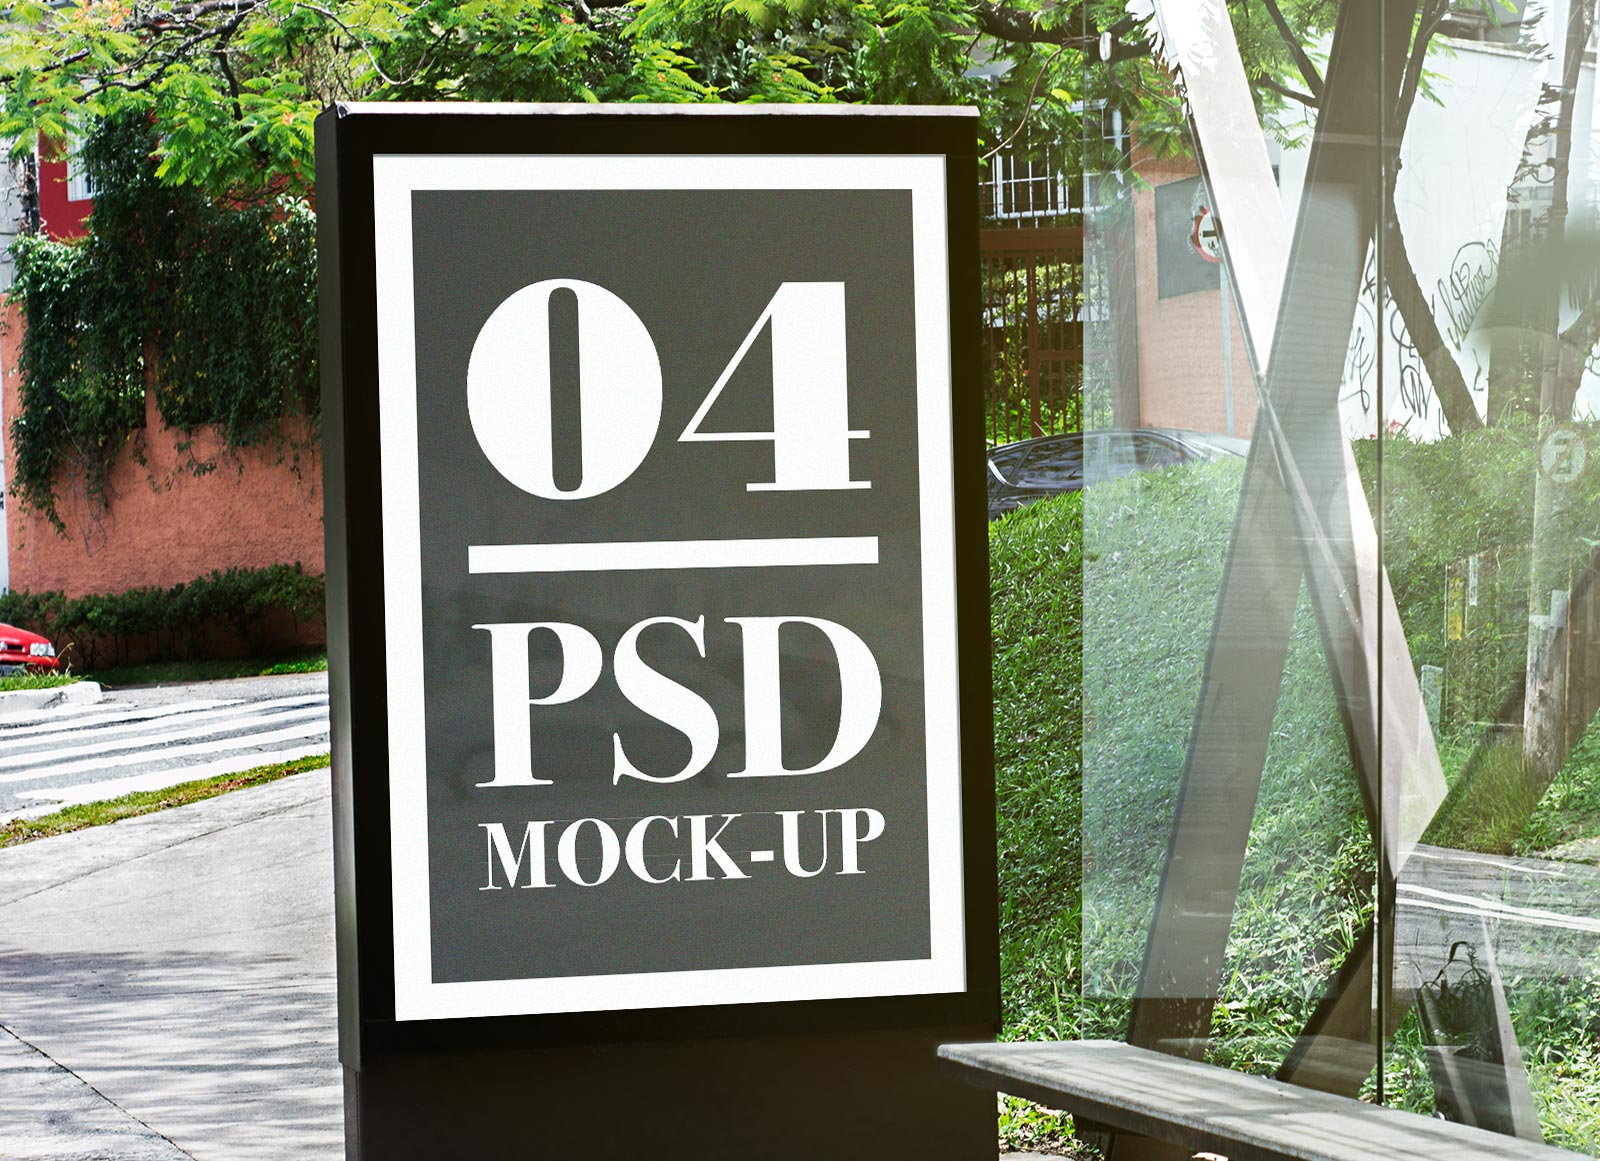 Free-Moppet-Outdoor-Advertising-Mockup-PSD